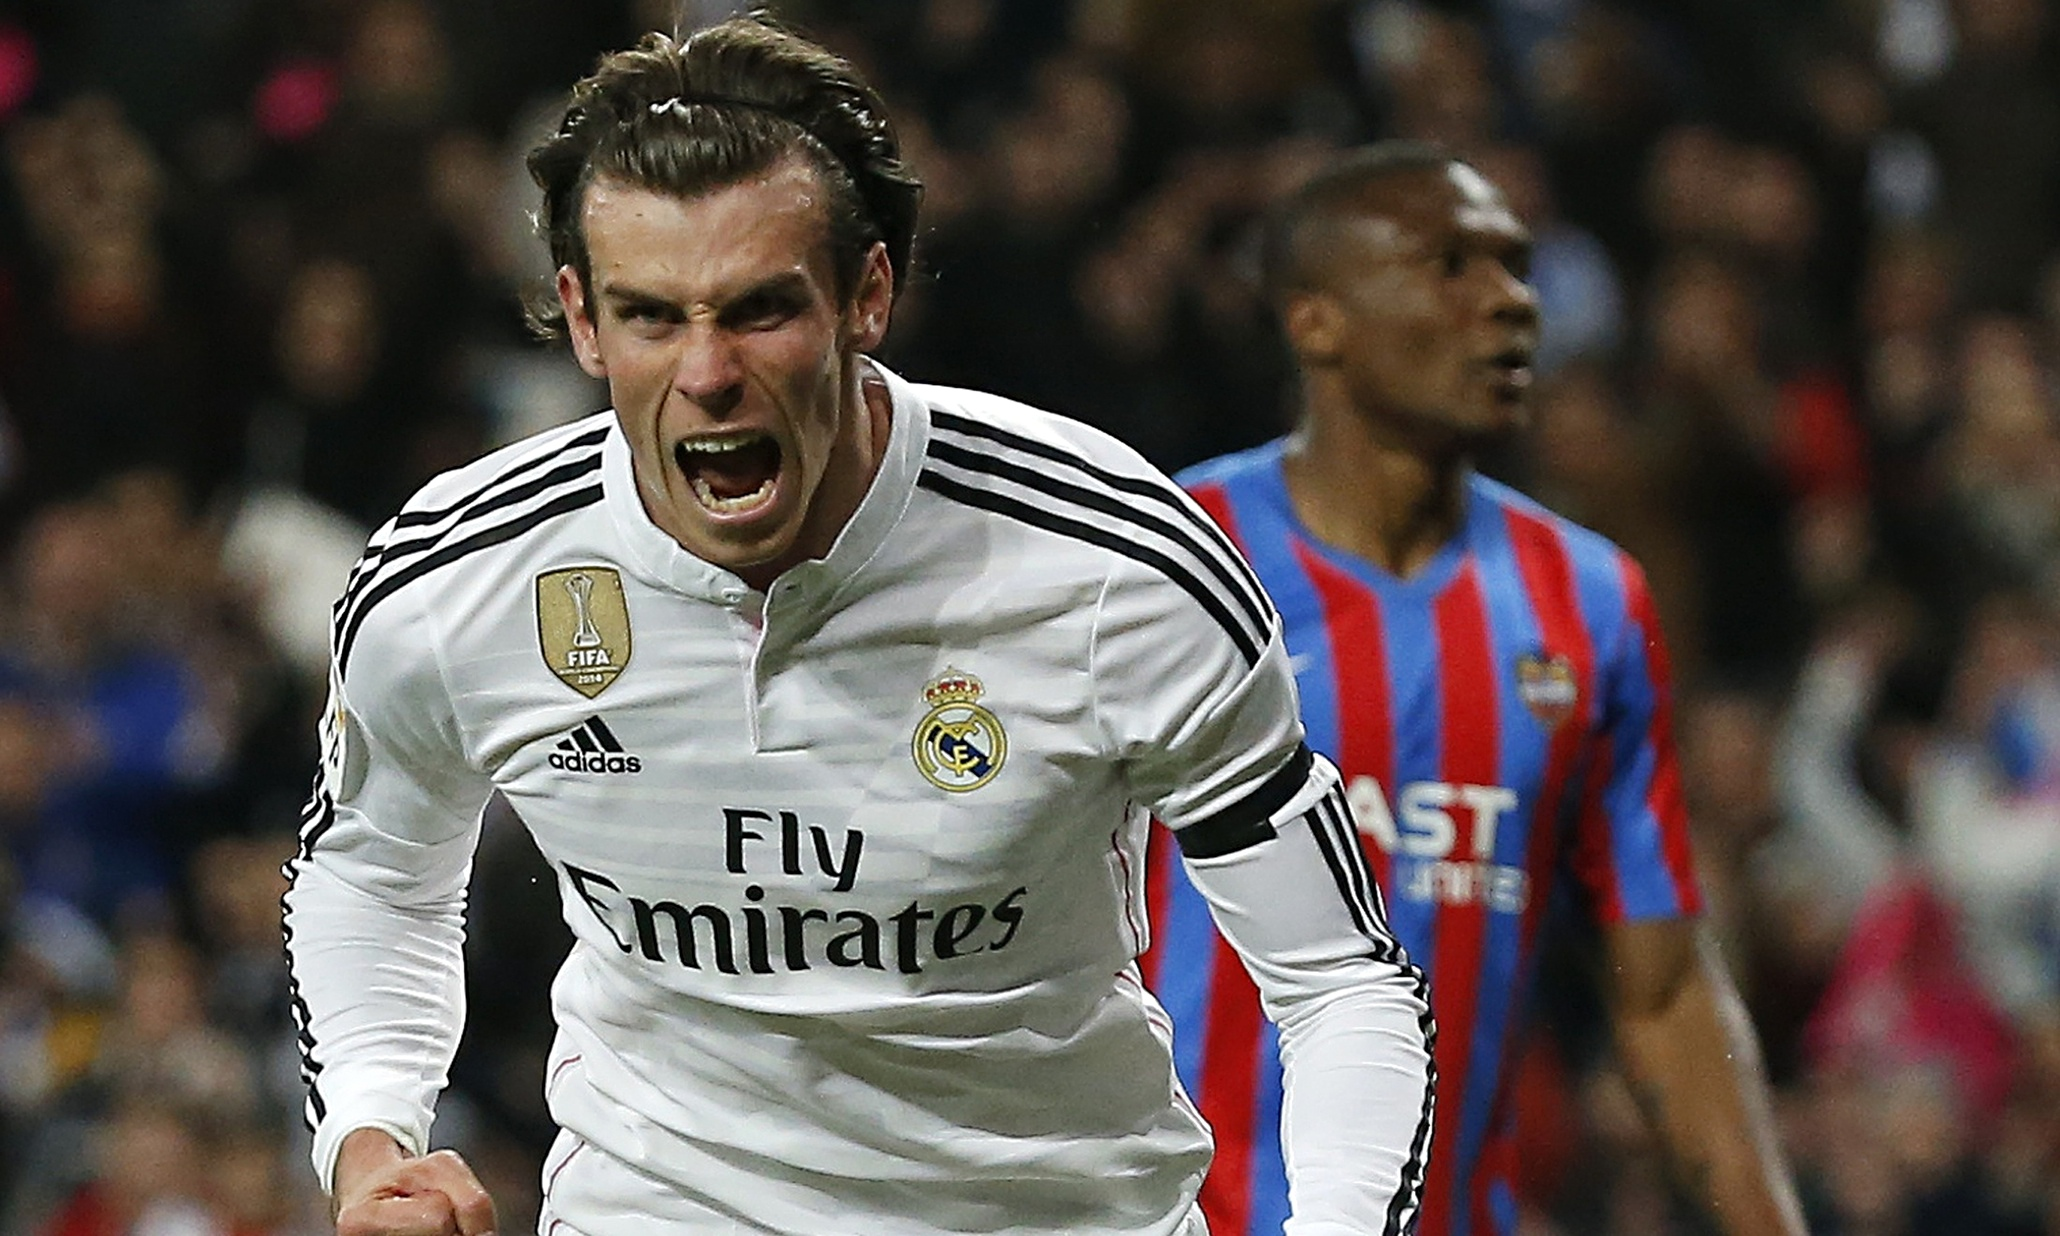 Gareth Bale bring real madrid to win la liga 2015 soccer